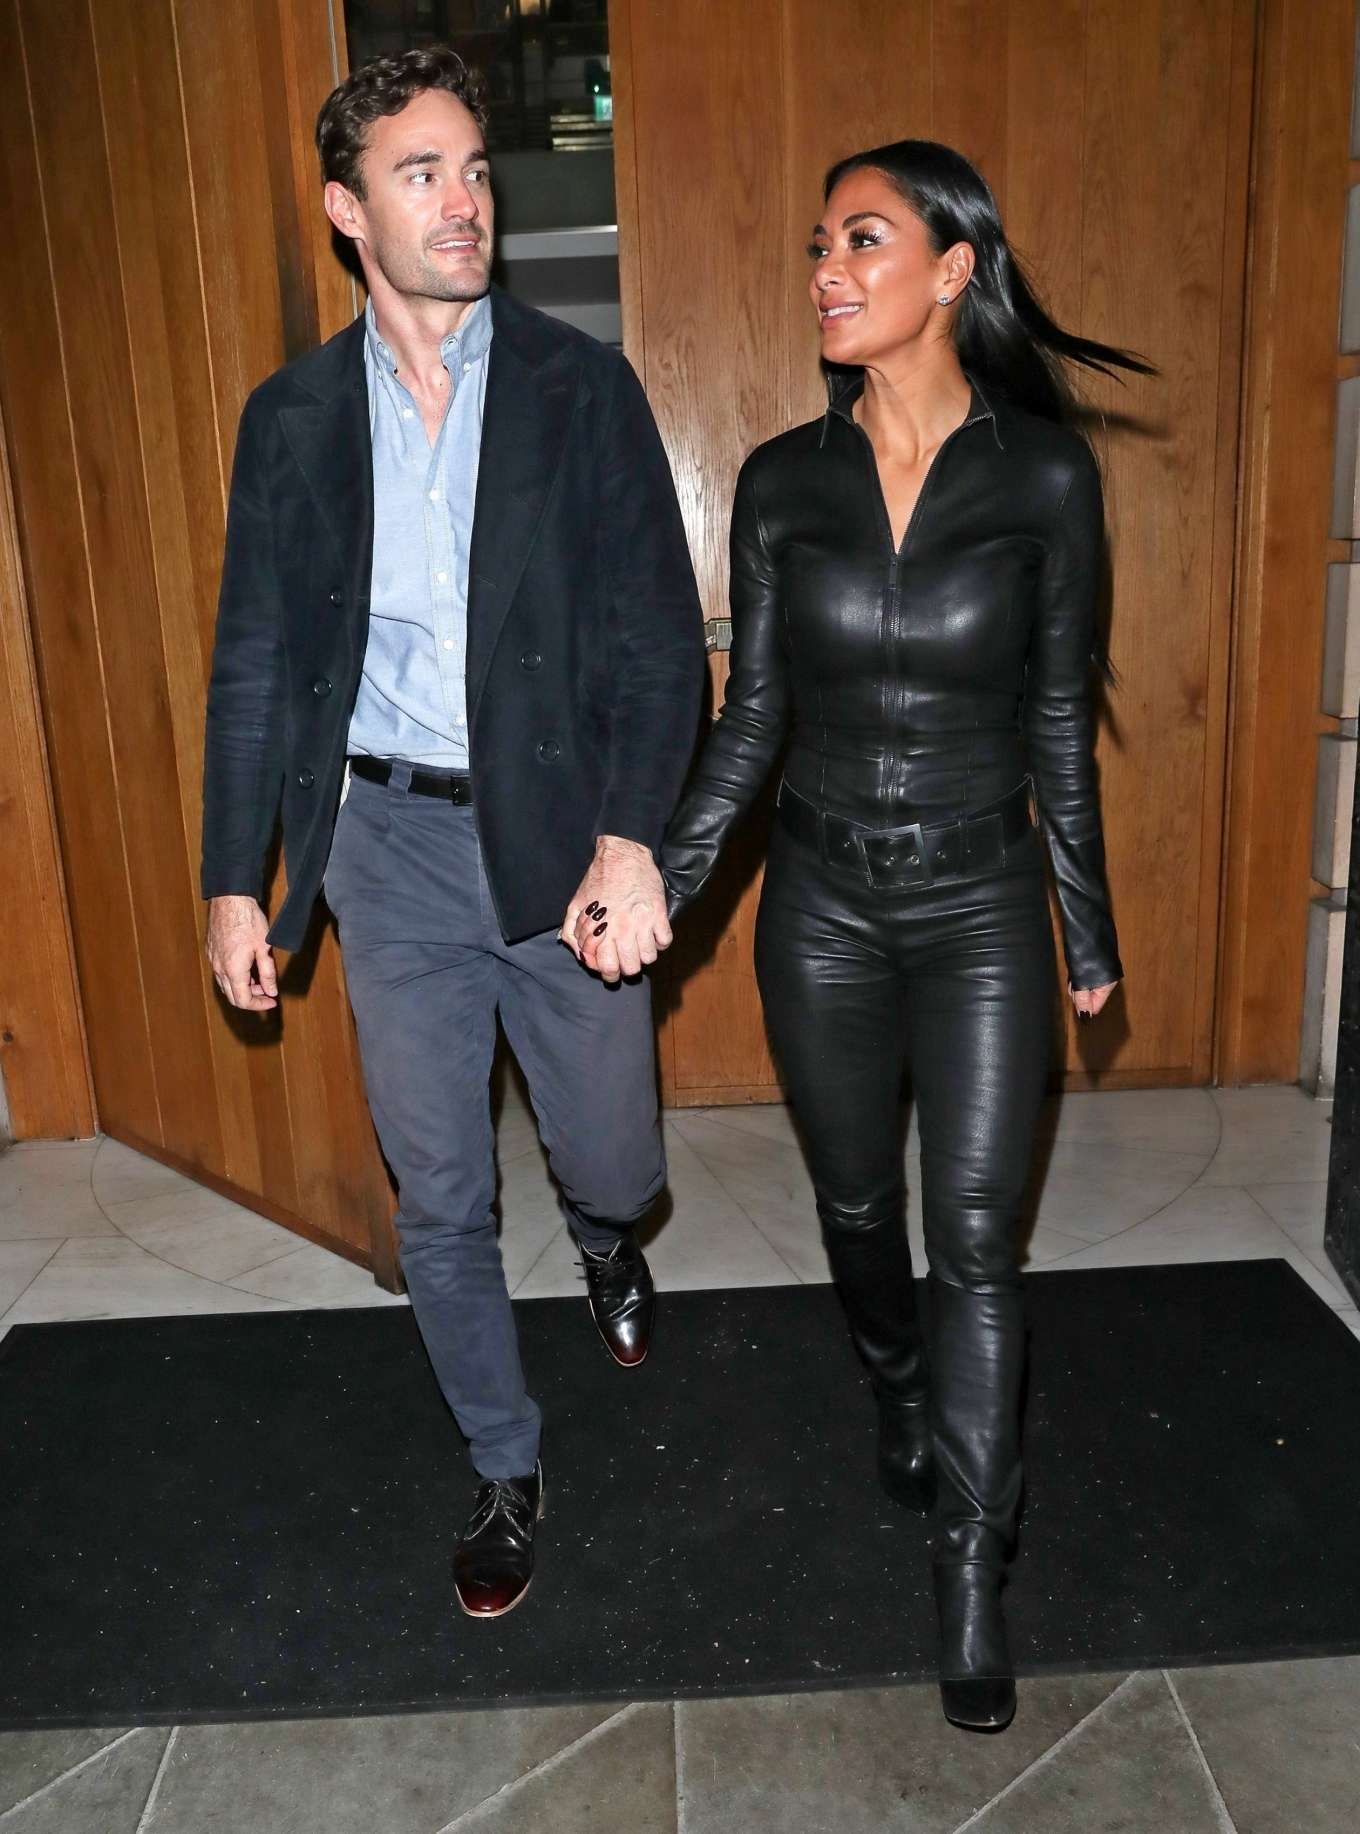 Nicole Scherzinger in Leather Catsuit with Thom Evans - Out in London